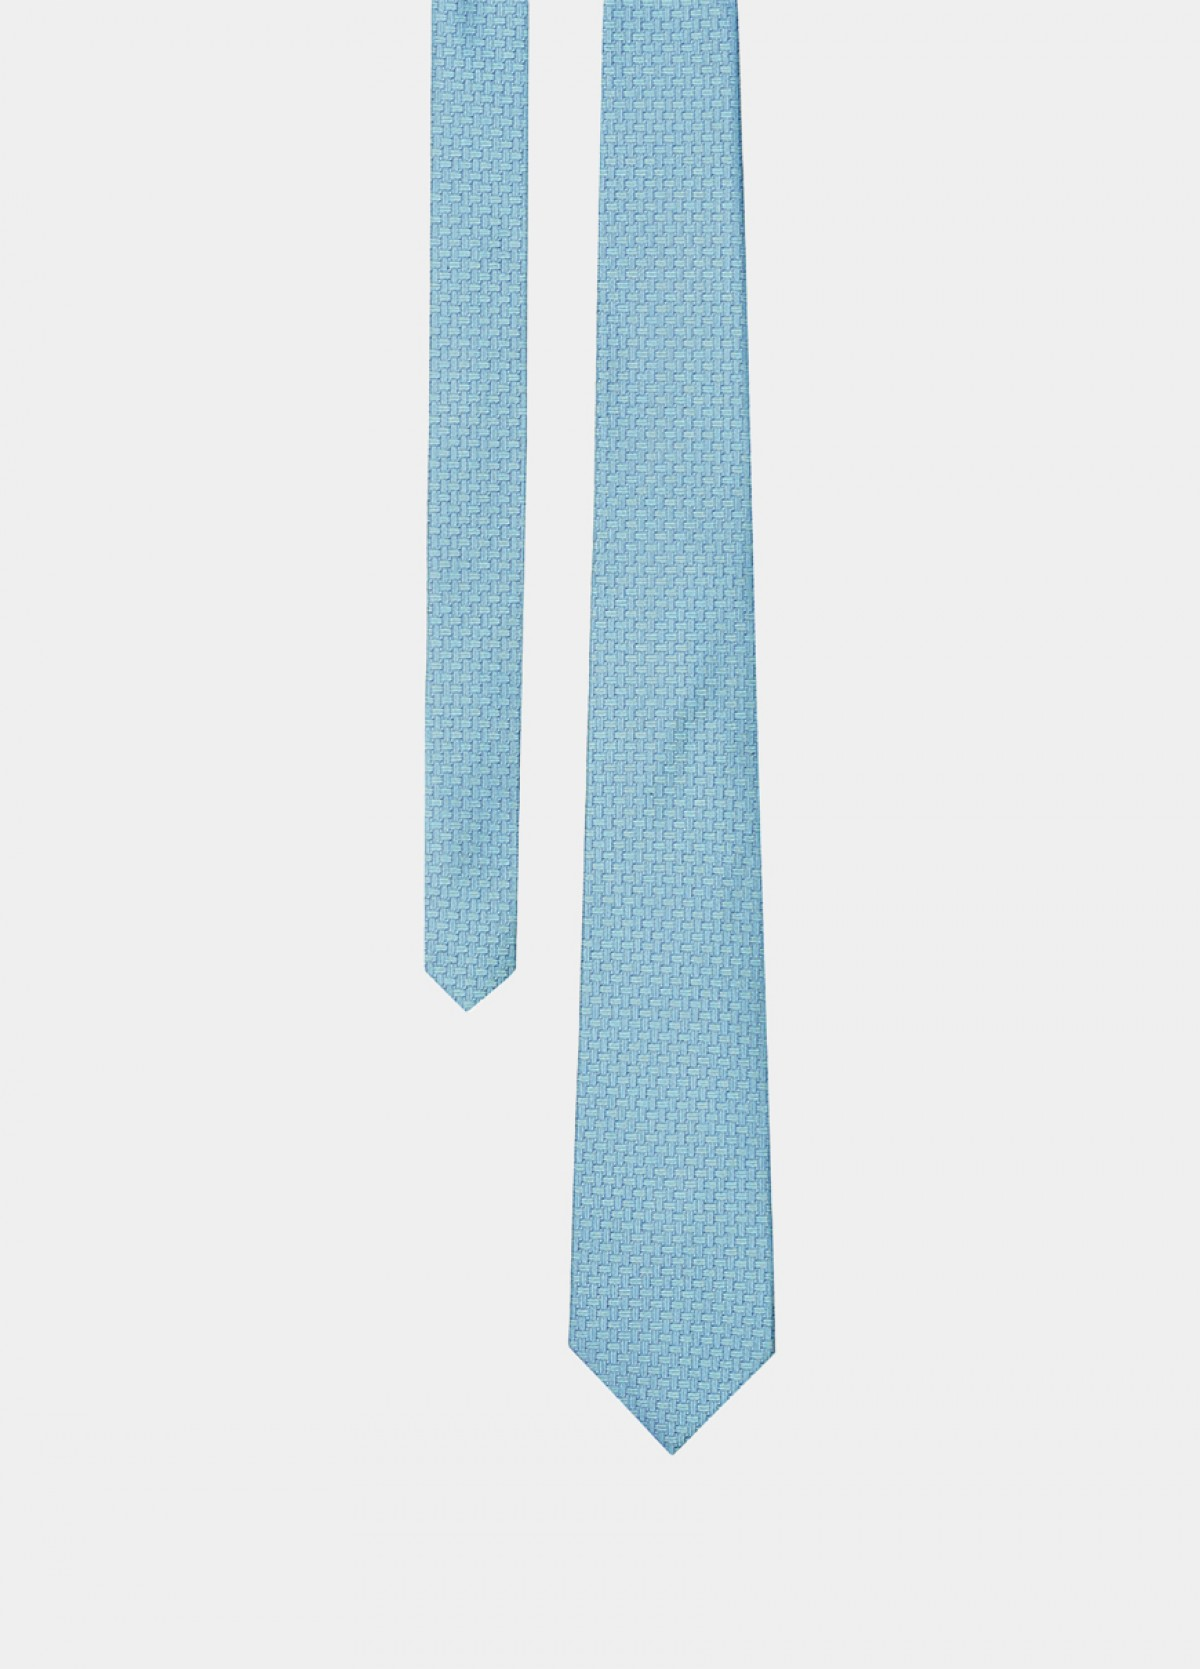 The Blue Turq Stain Resistant Tie